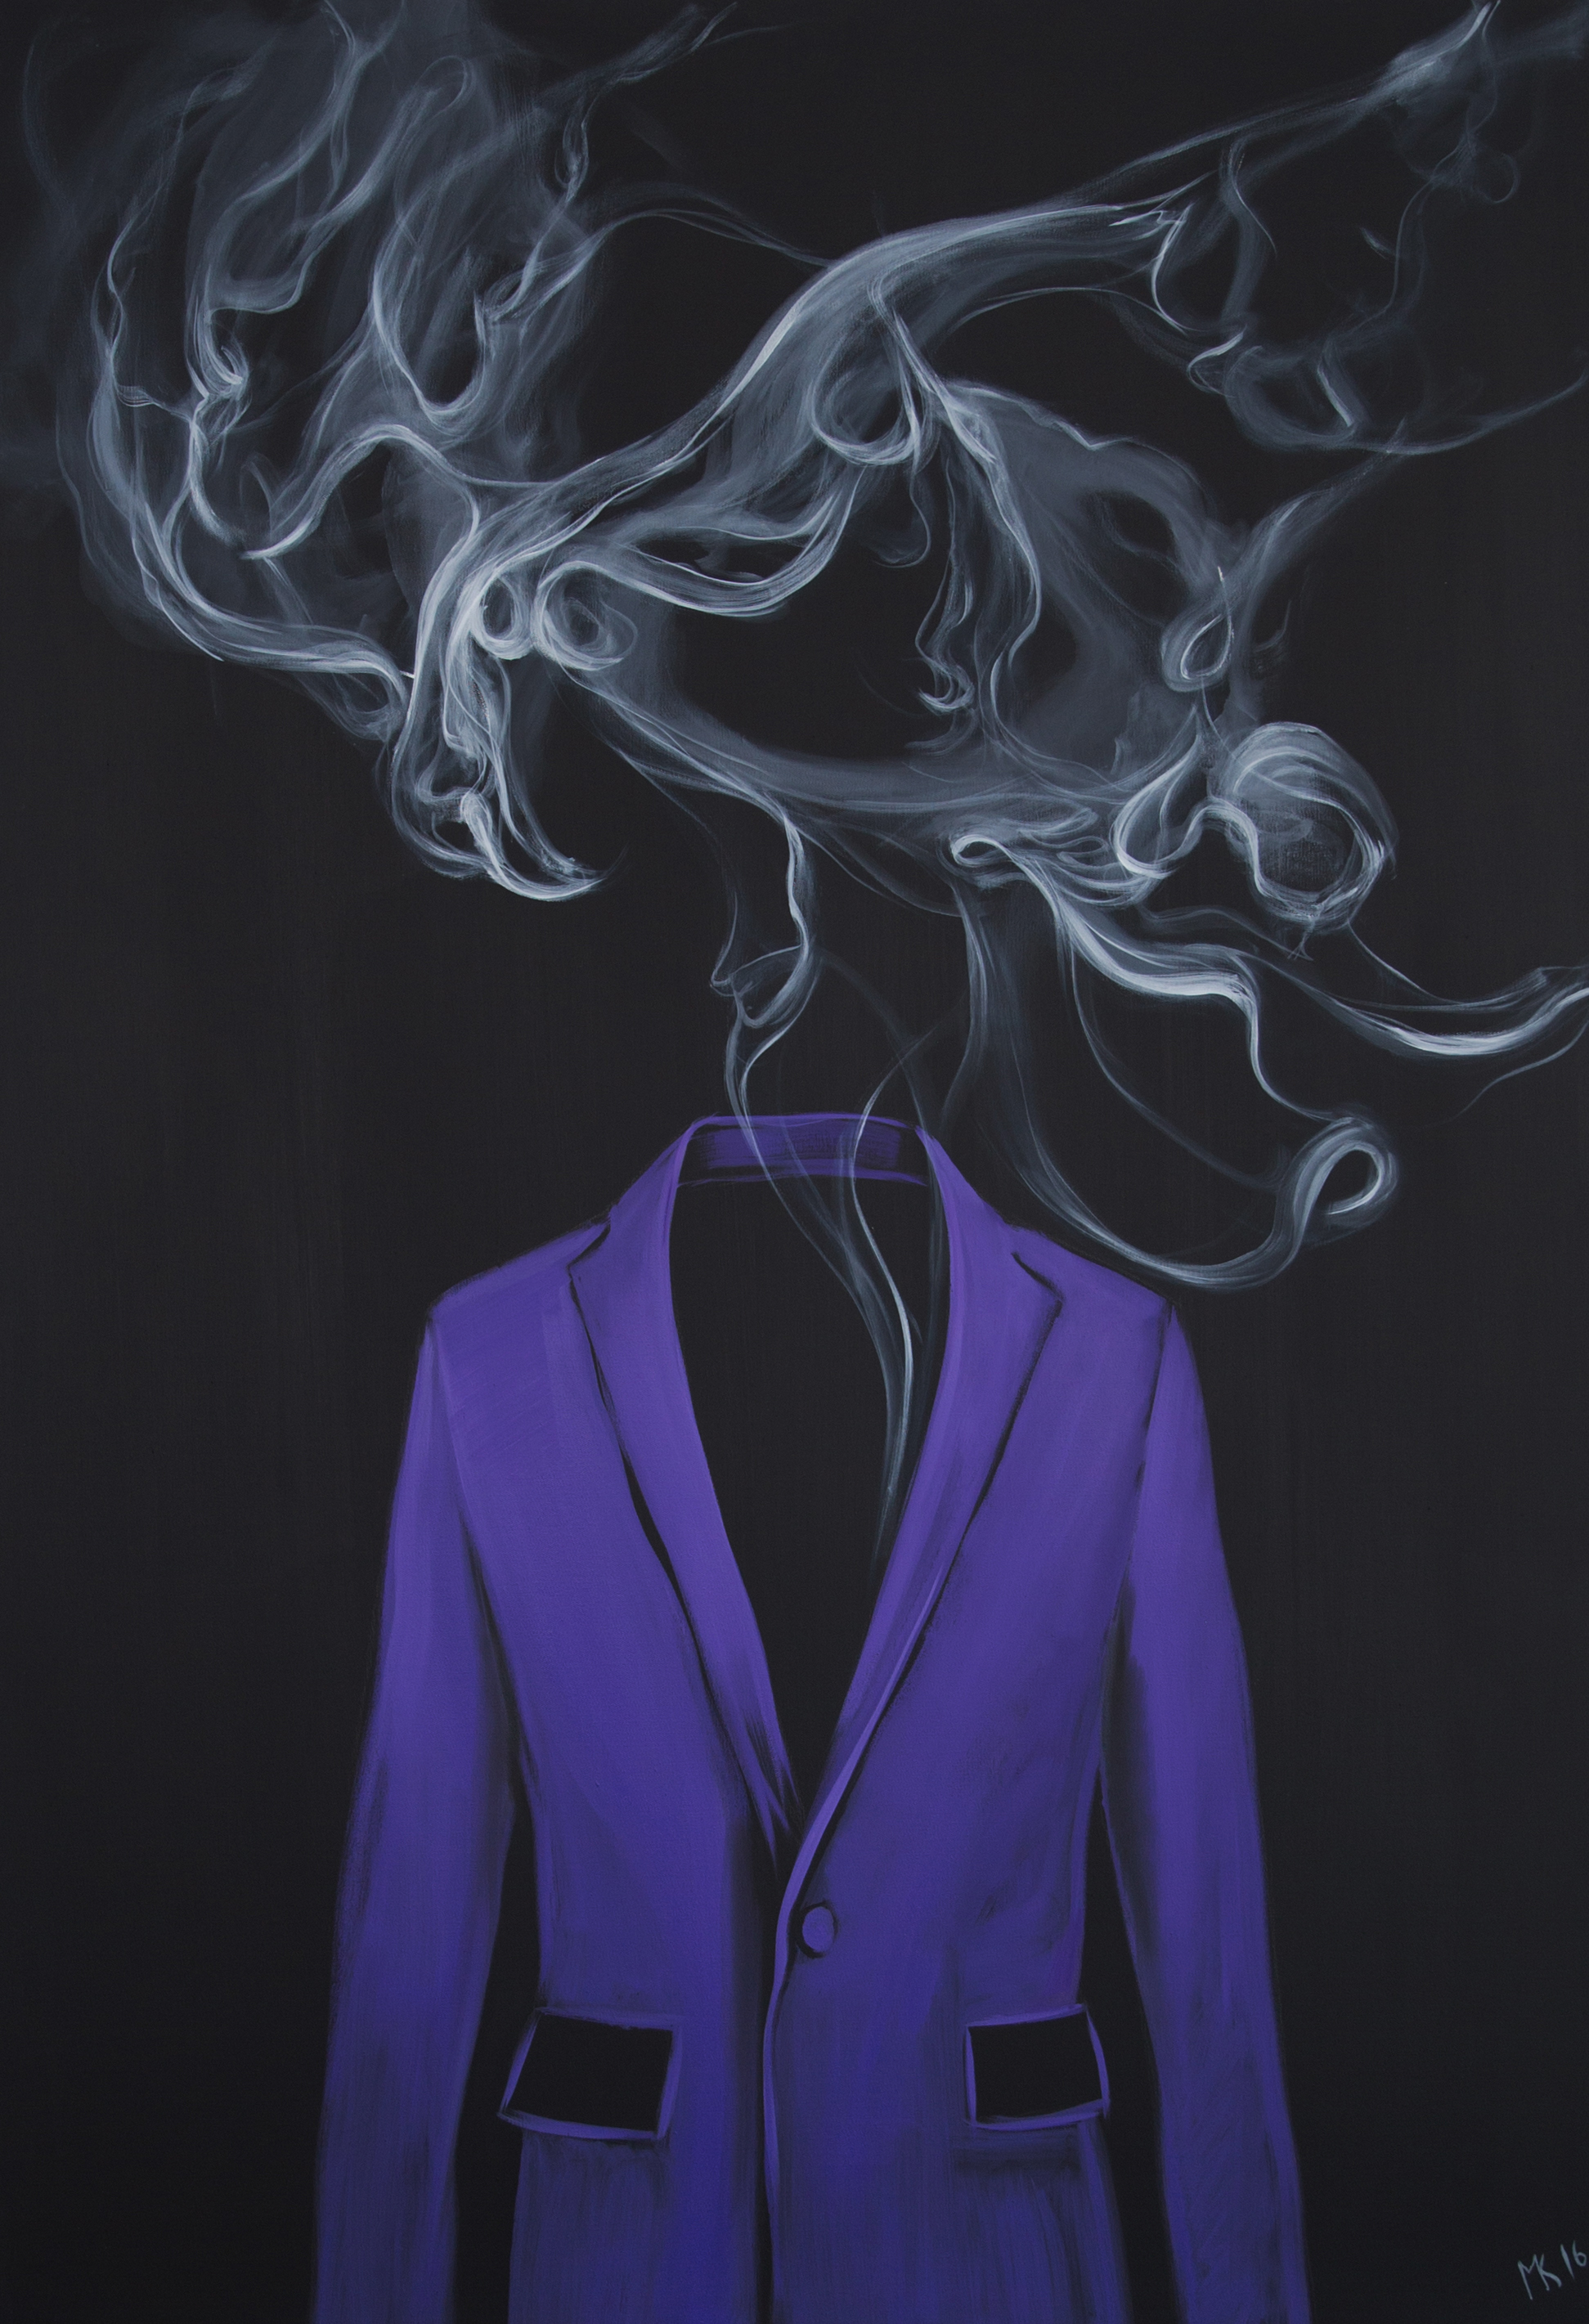 Purple - smoke, Mher Khachatryan